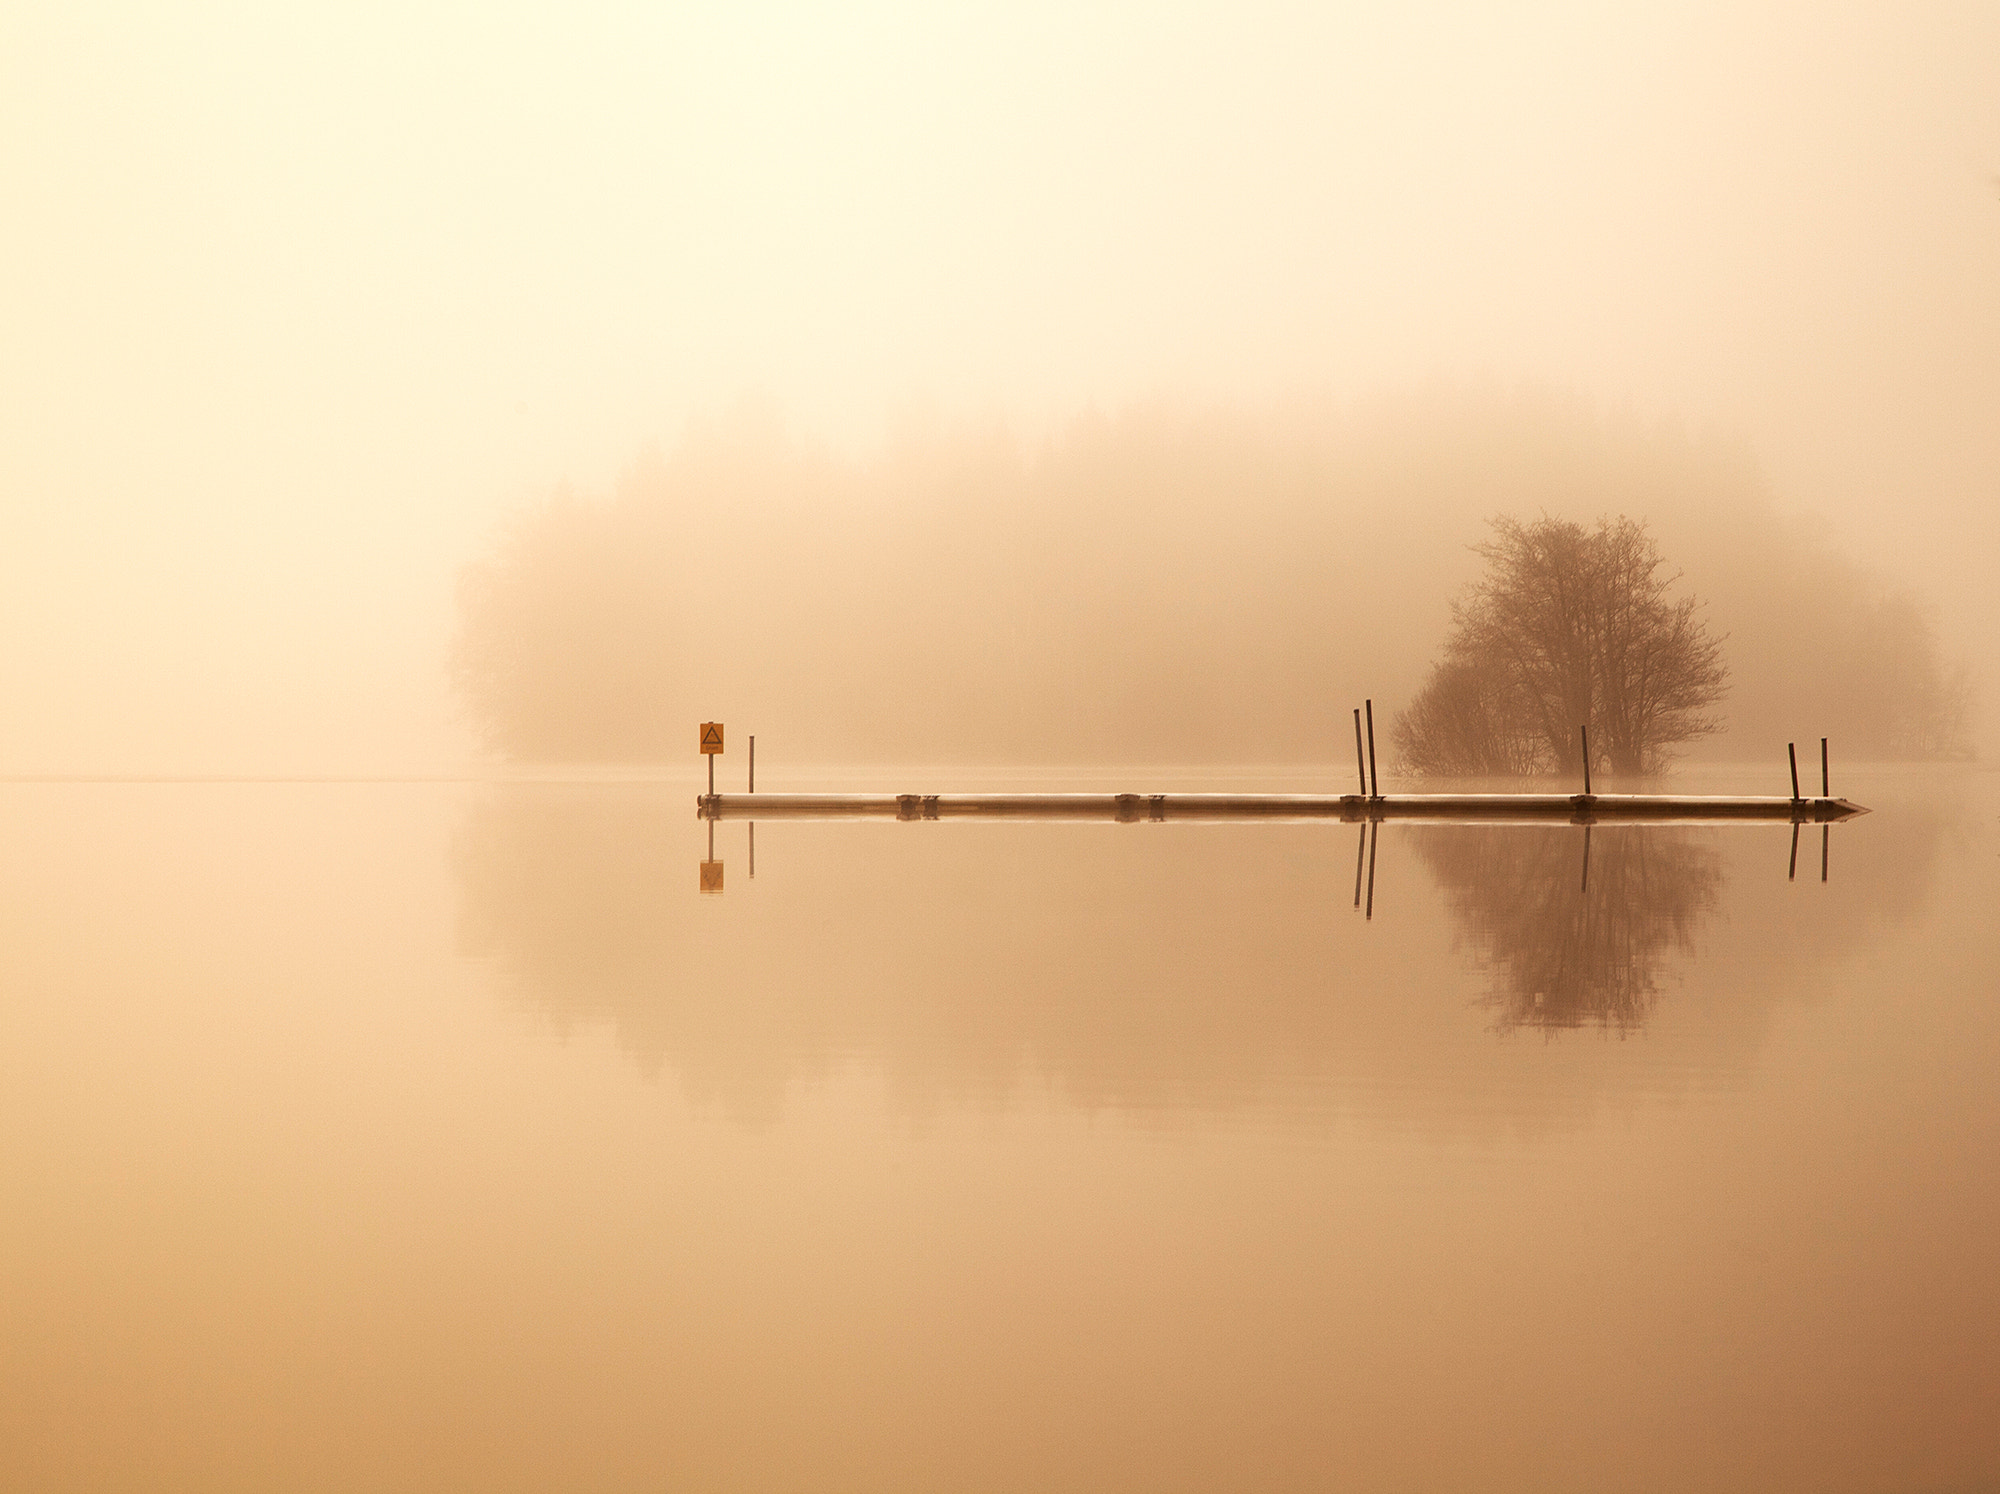 Photograph Peaceful feeling by Anne Ståhl on 500px